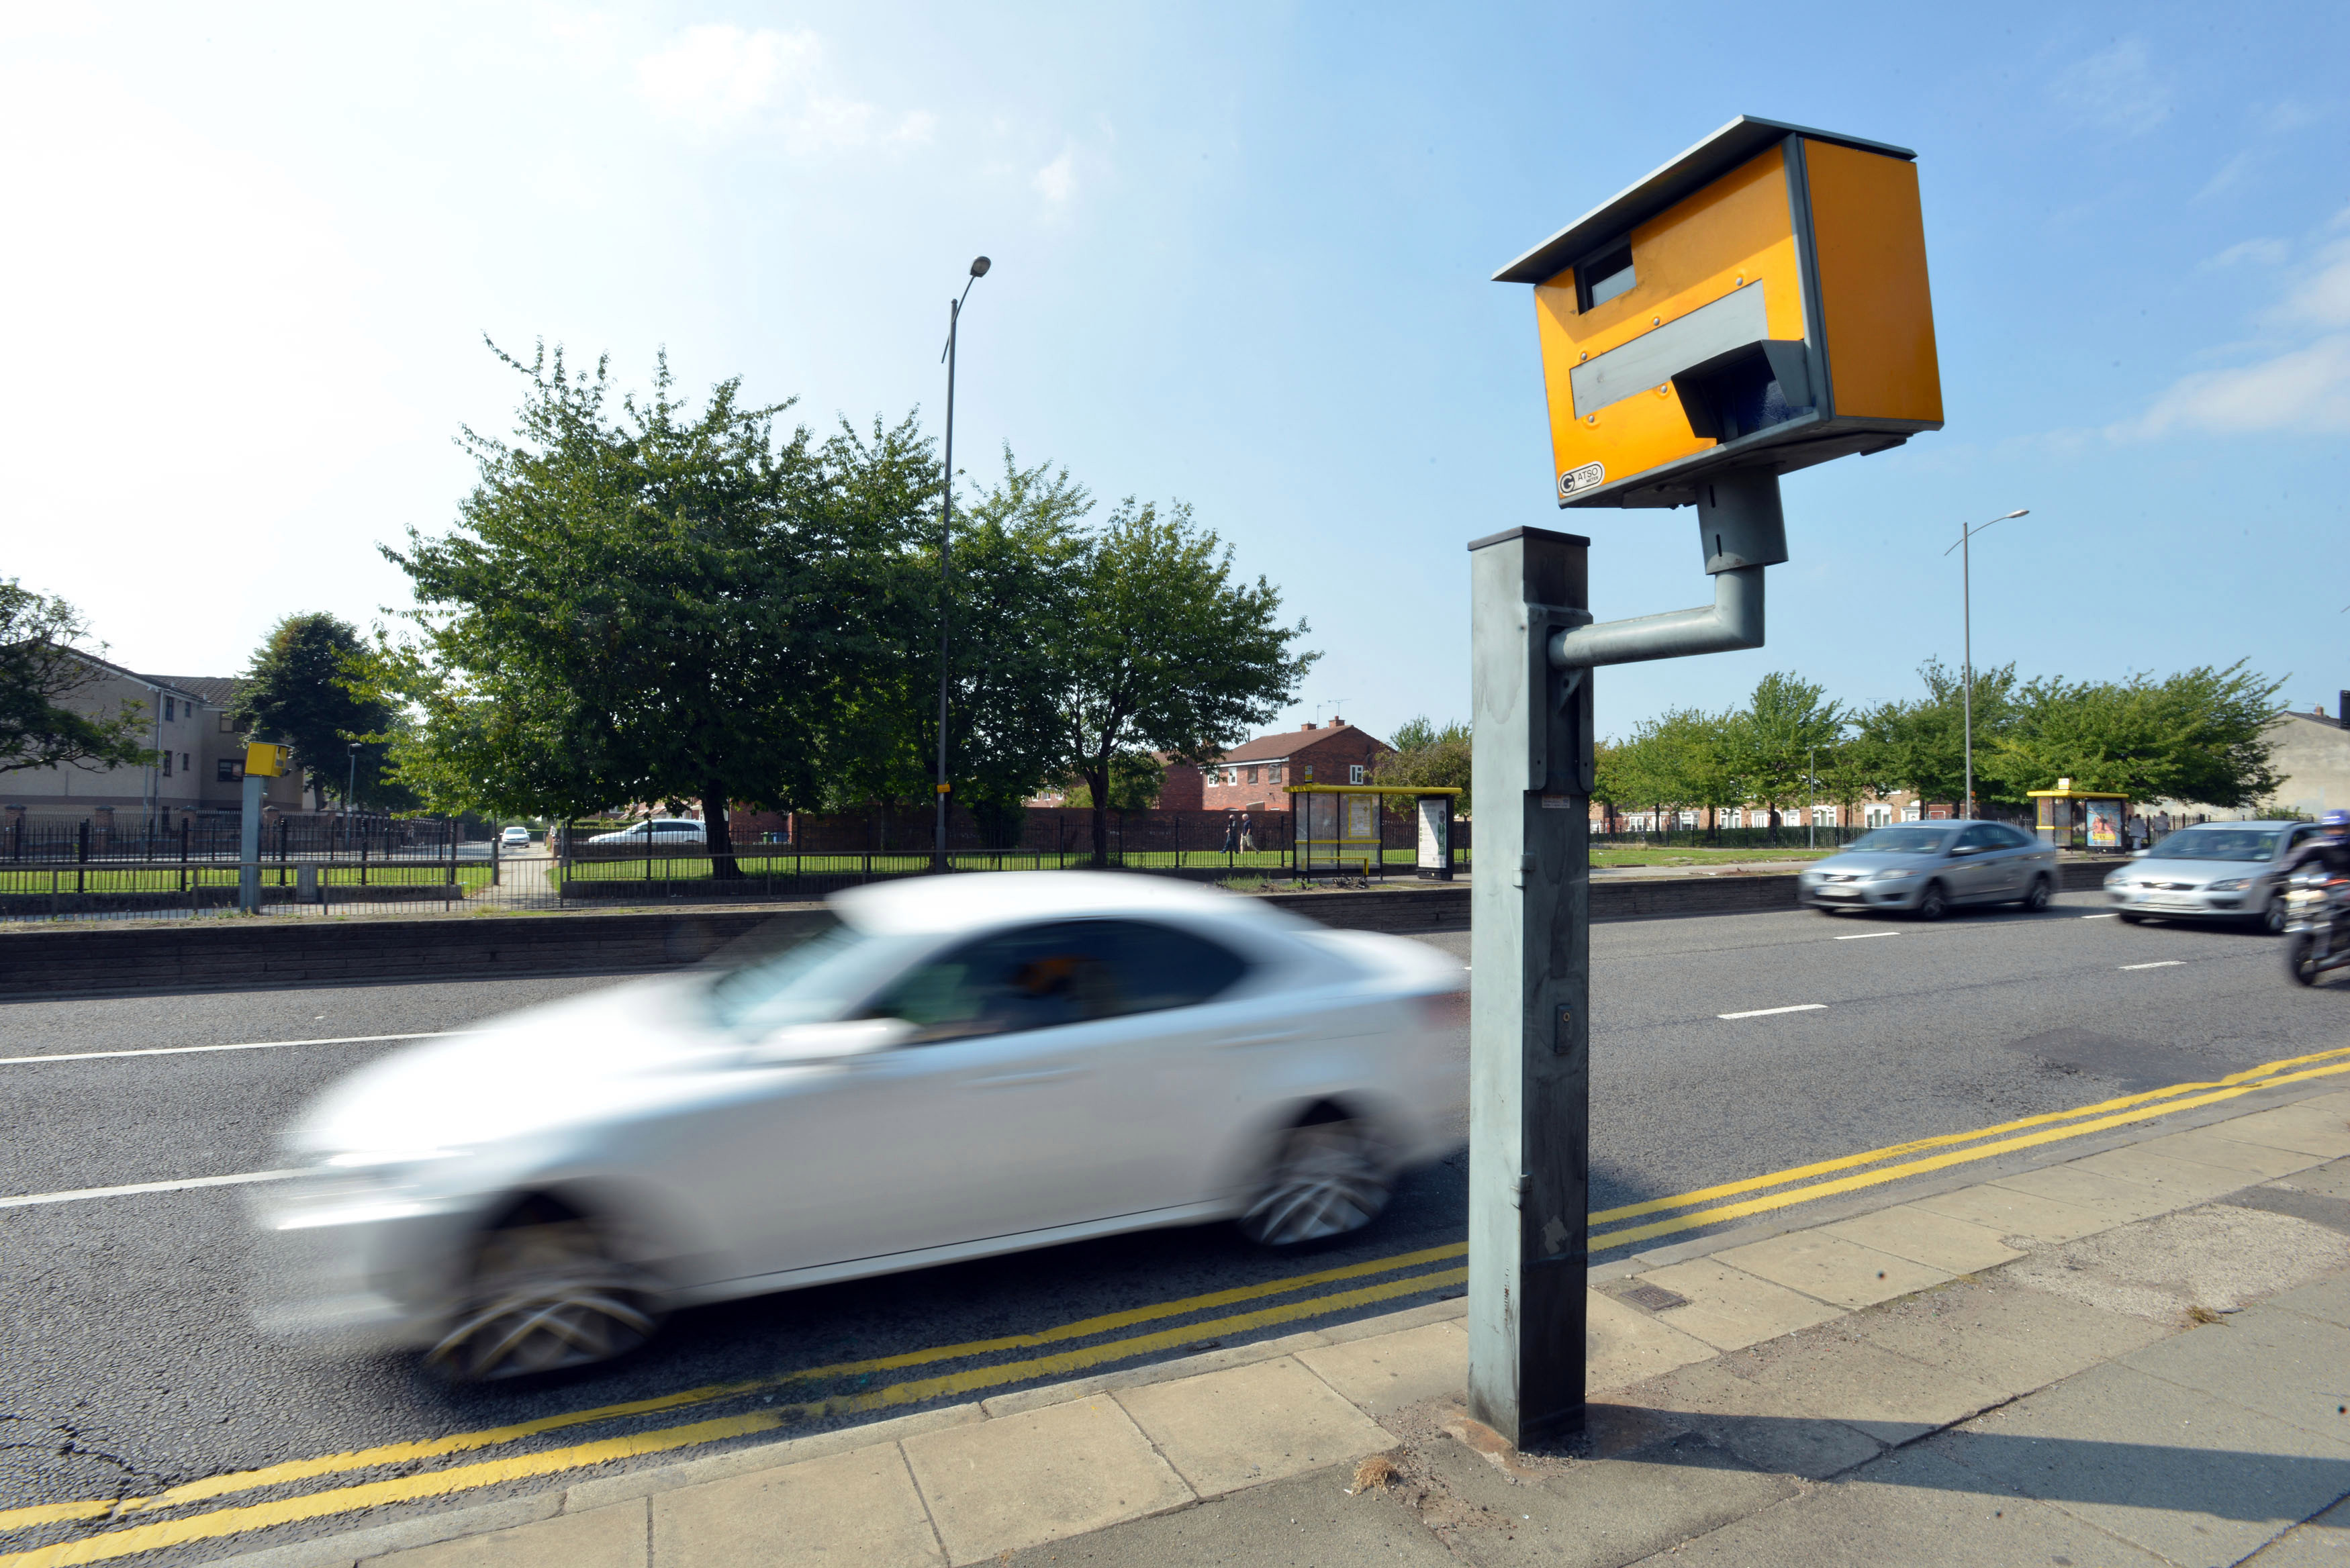 New research shows speeding is one of the biggest causes of deaths on UK roads